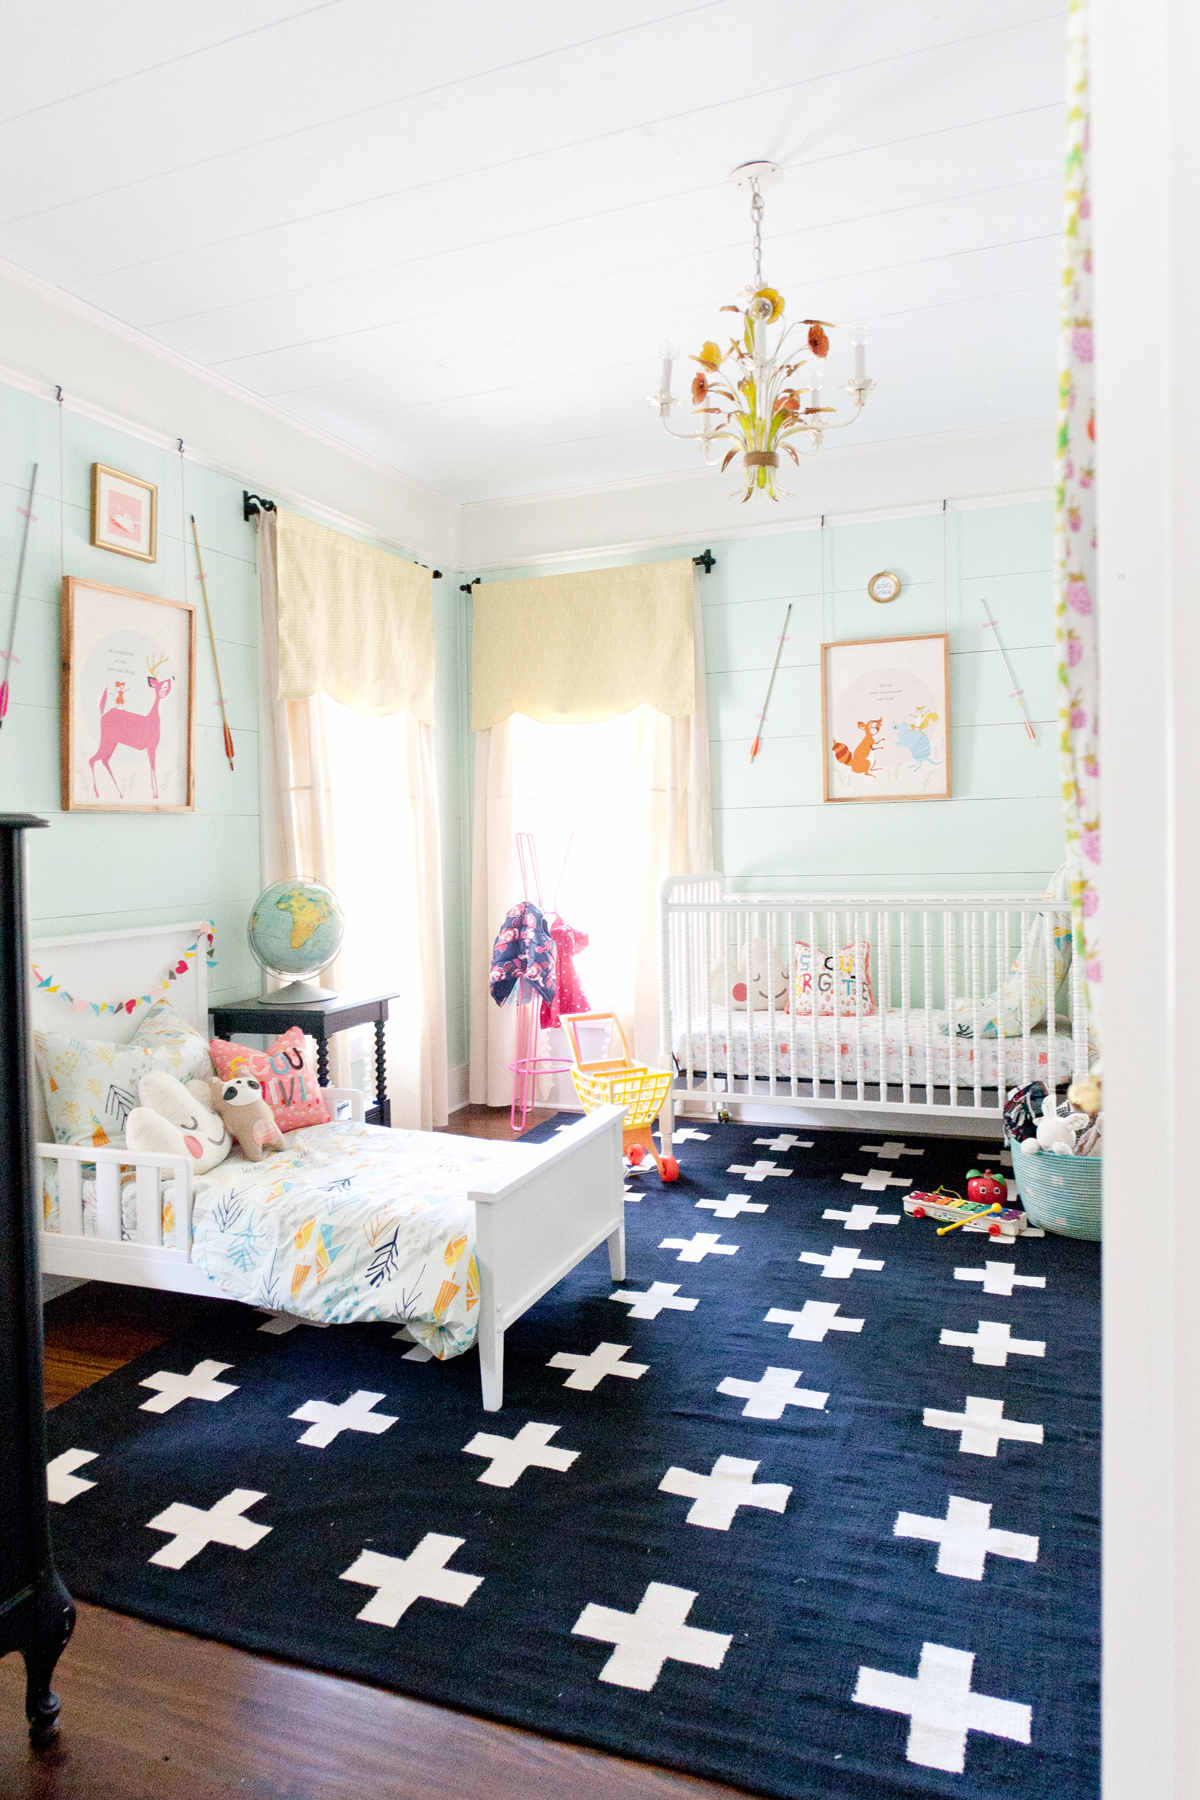 Shared room inspiration lay baby lay lay baby lay for Bedroom ideas for babies